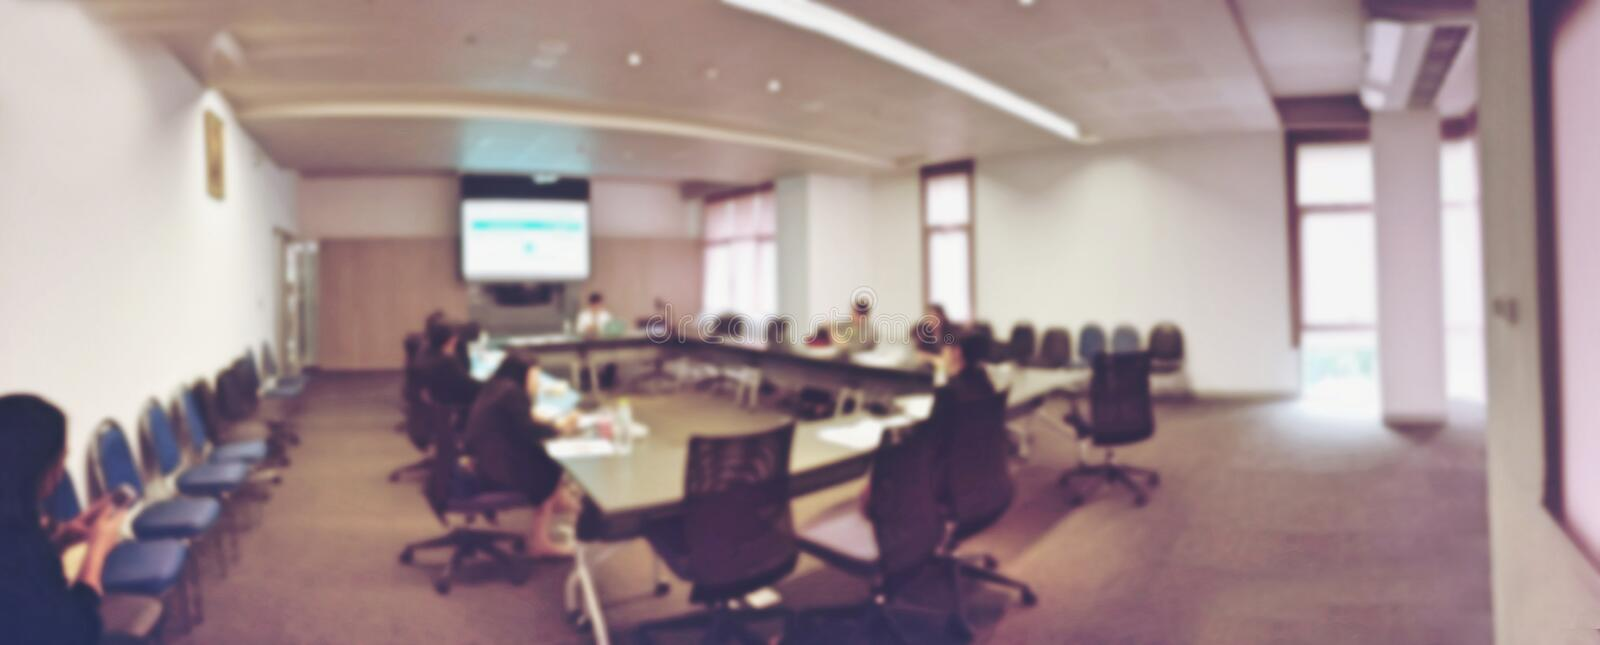 Blurred image of business people and student sitting in conference room, meeting room for profession seminar with screen projector stock photography